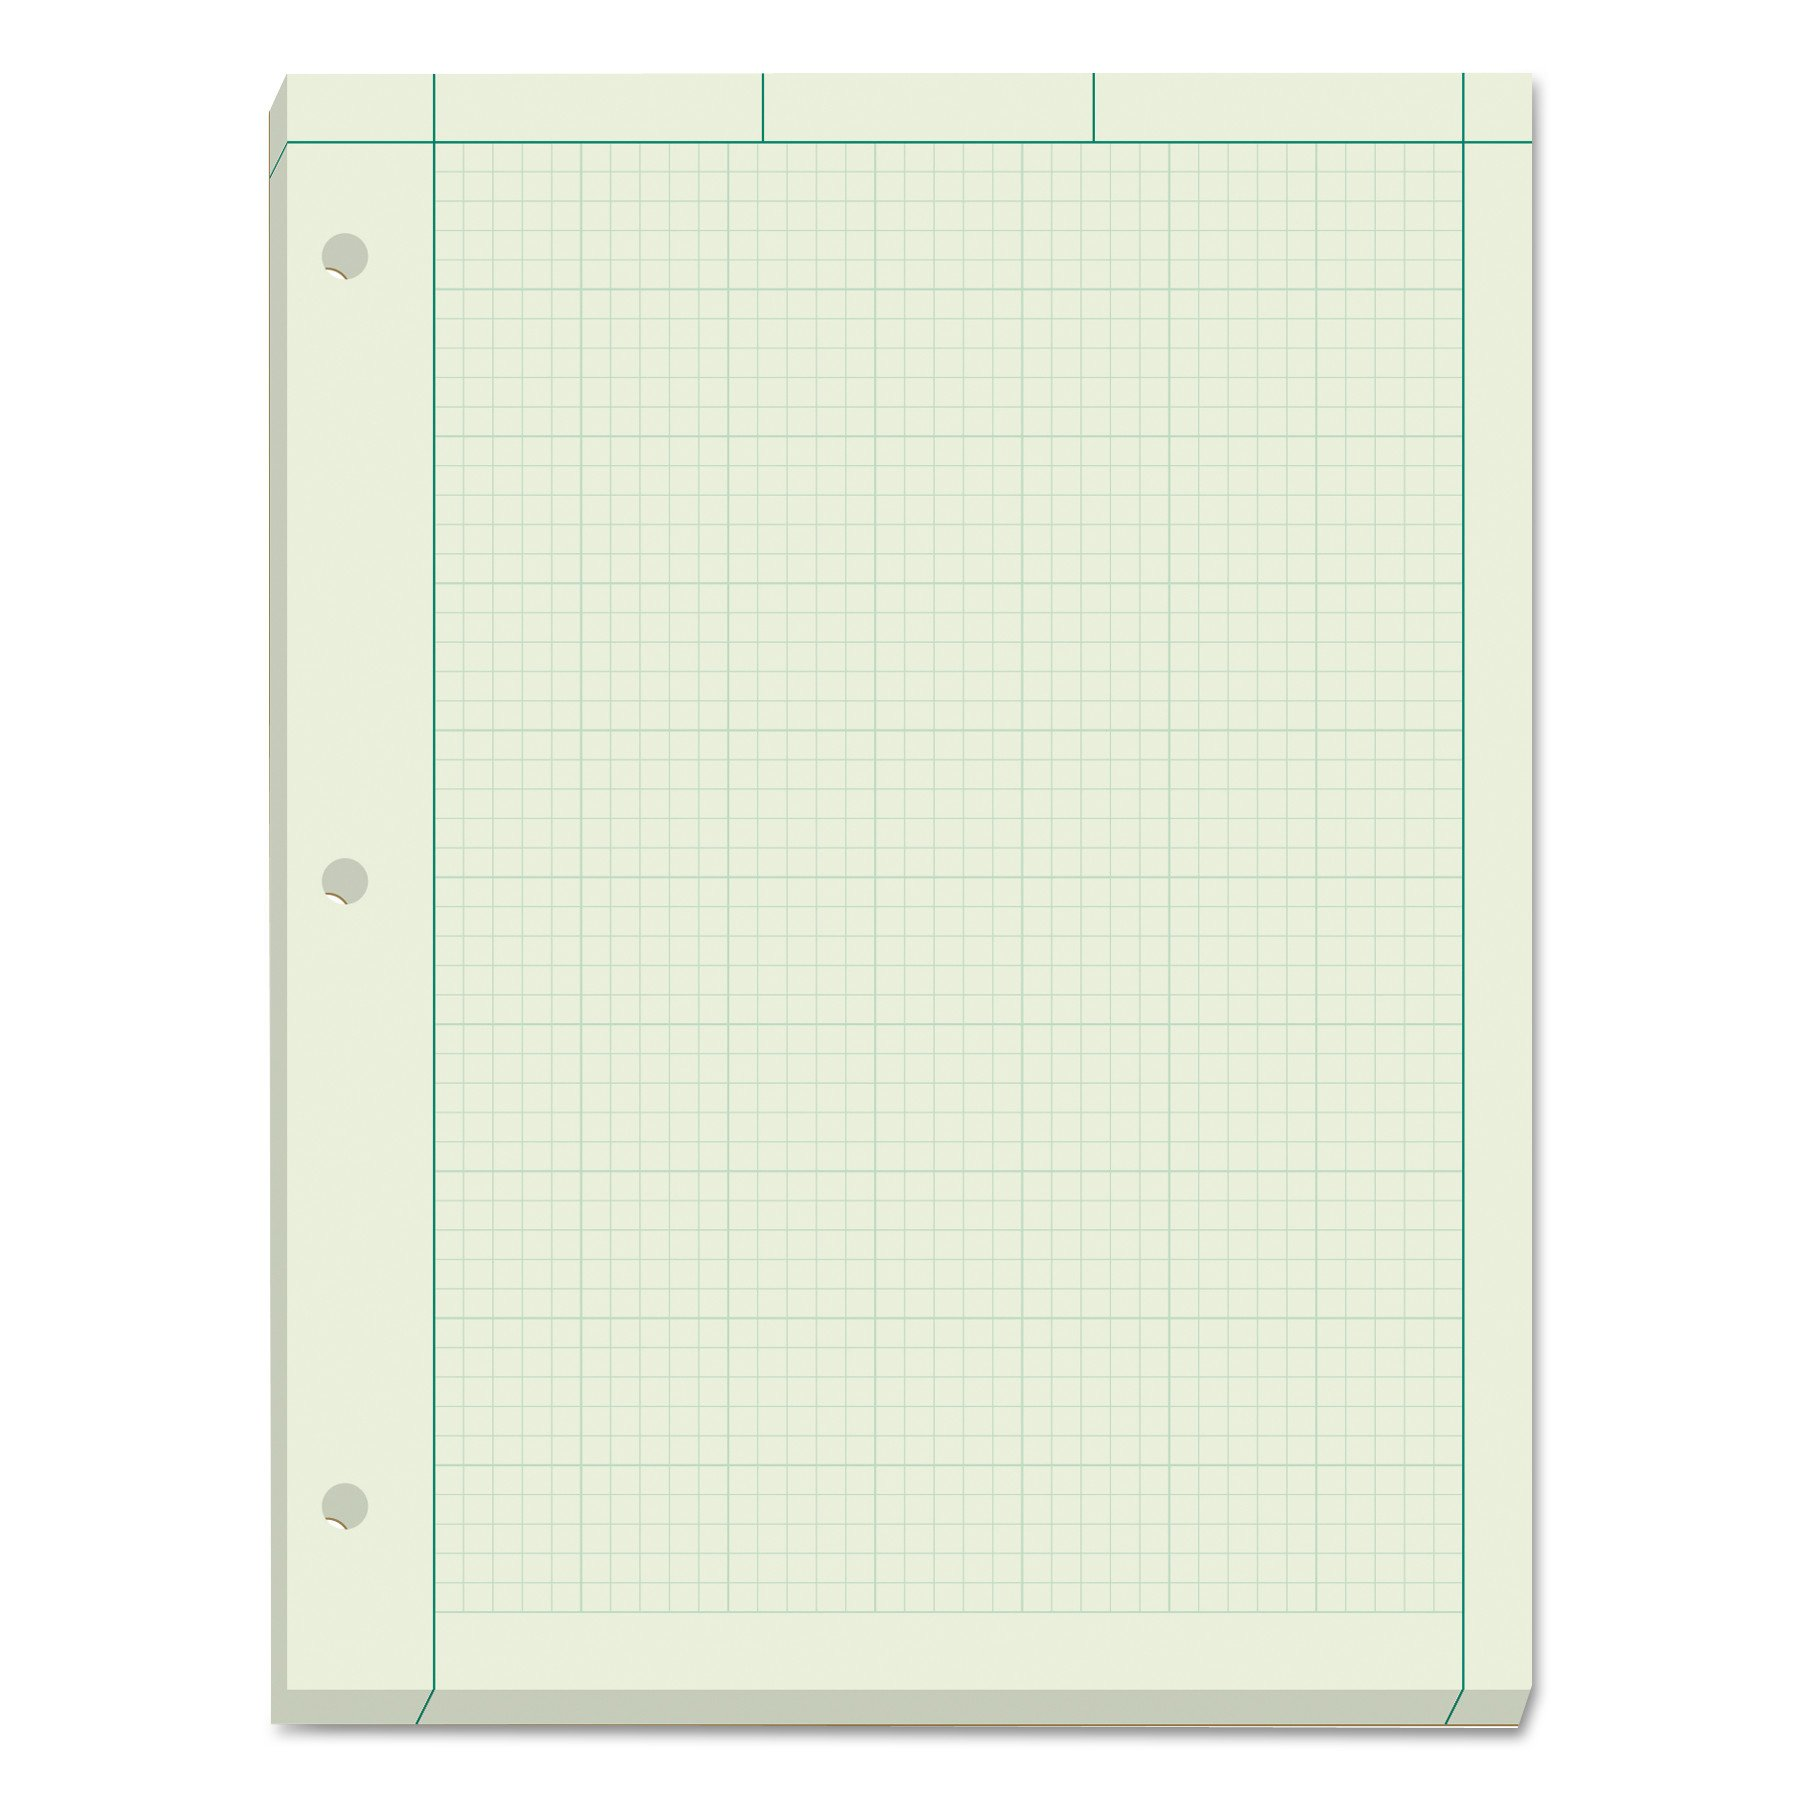 TOPS Engineering Computation Pad, 8-1/2'' x 11'', Glue Top, 5 x 5 Graph Rule on Back, Green Tint Paper, 3-Hole Punched, 200 Sheets (35502)